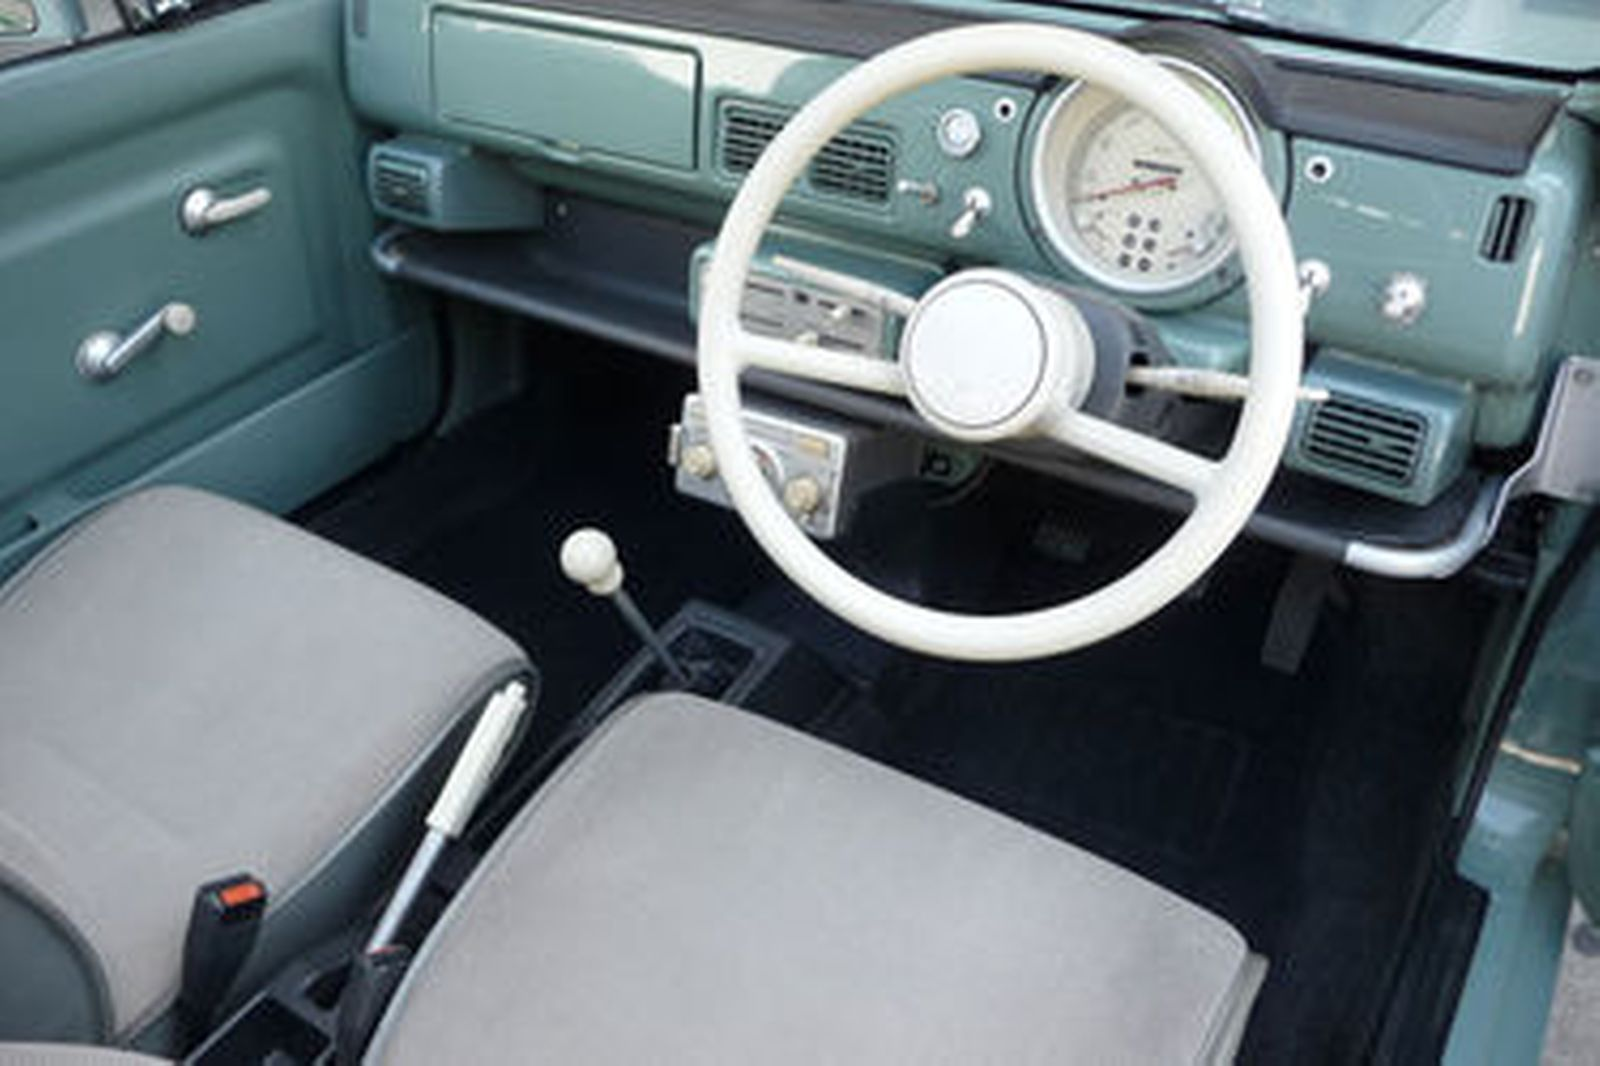 Nissan Make A Payment >> Sold: Nissan PAO 2 Door Coupe Auctions - Lot 1 - Shannons